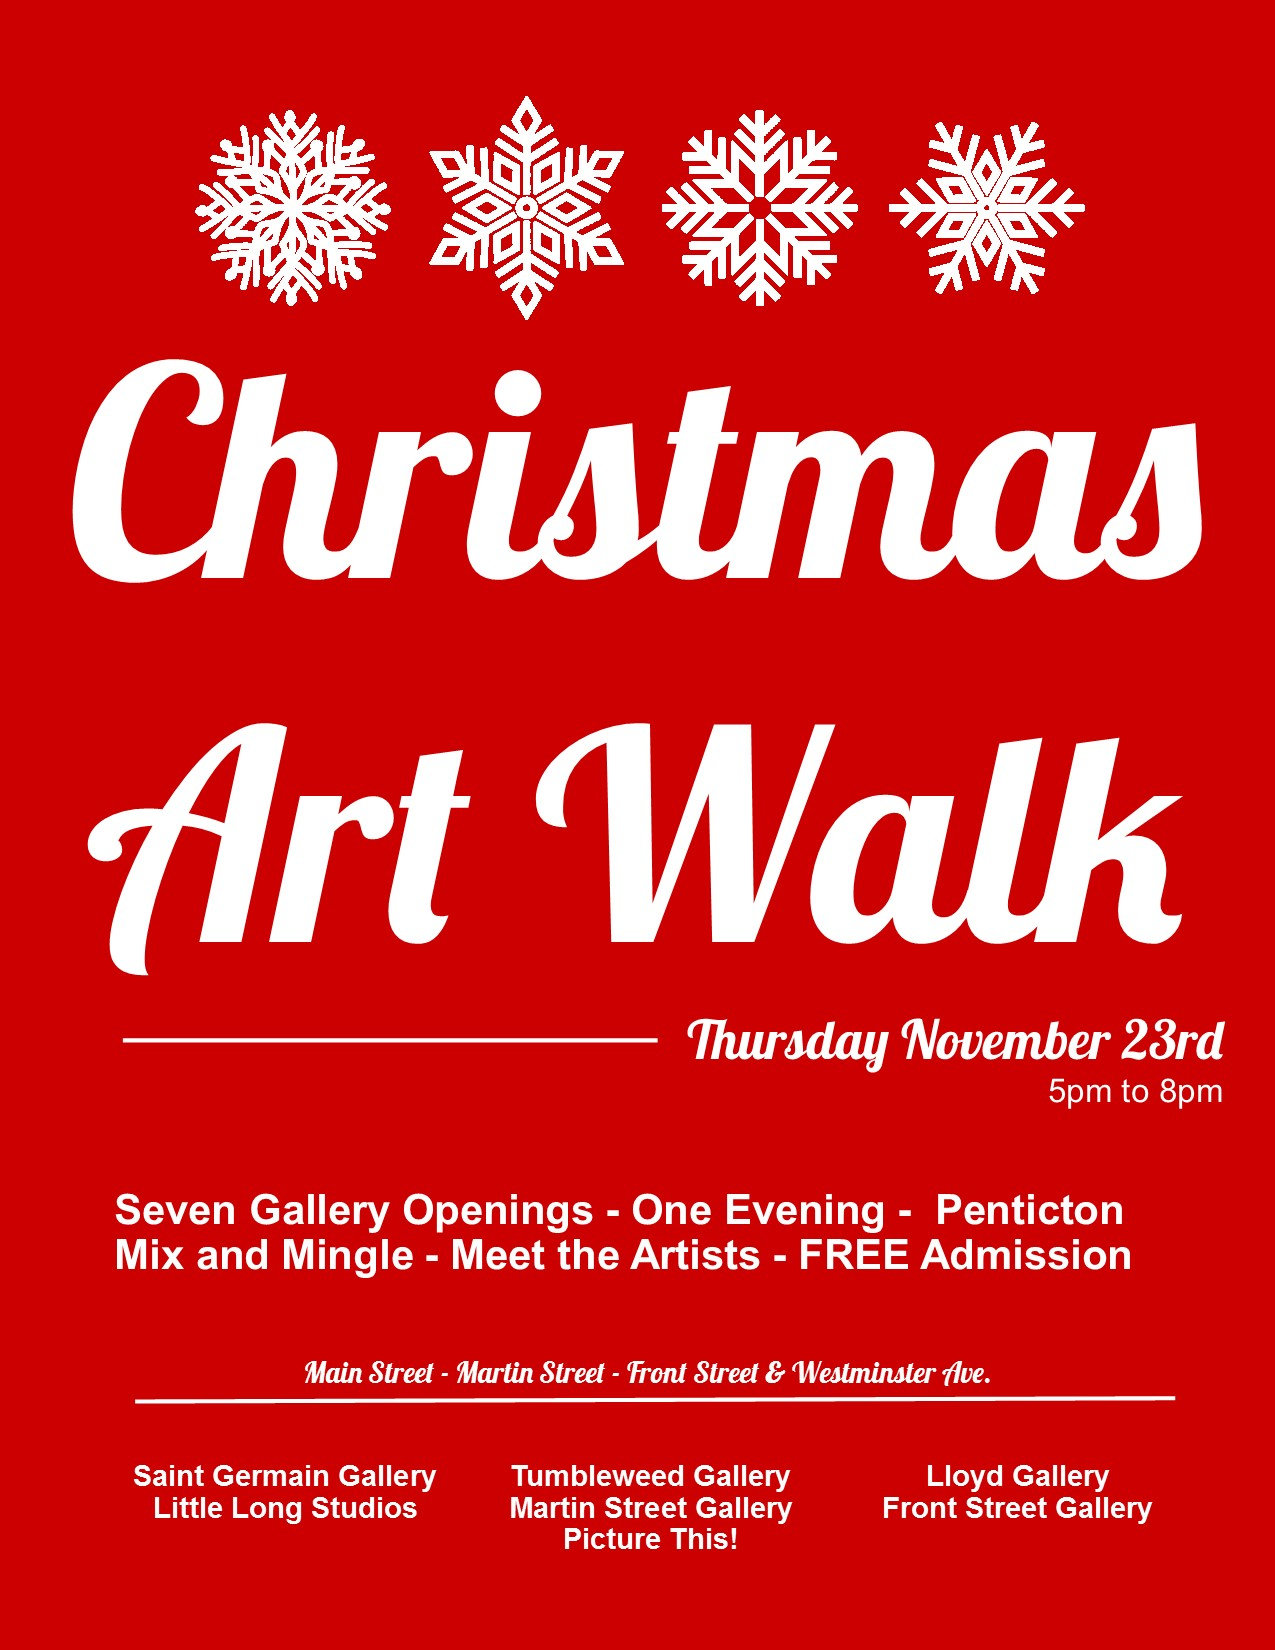 Penticton Art Walk - South Okanagan - Christmas 2017